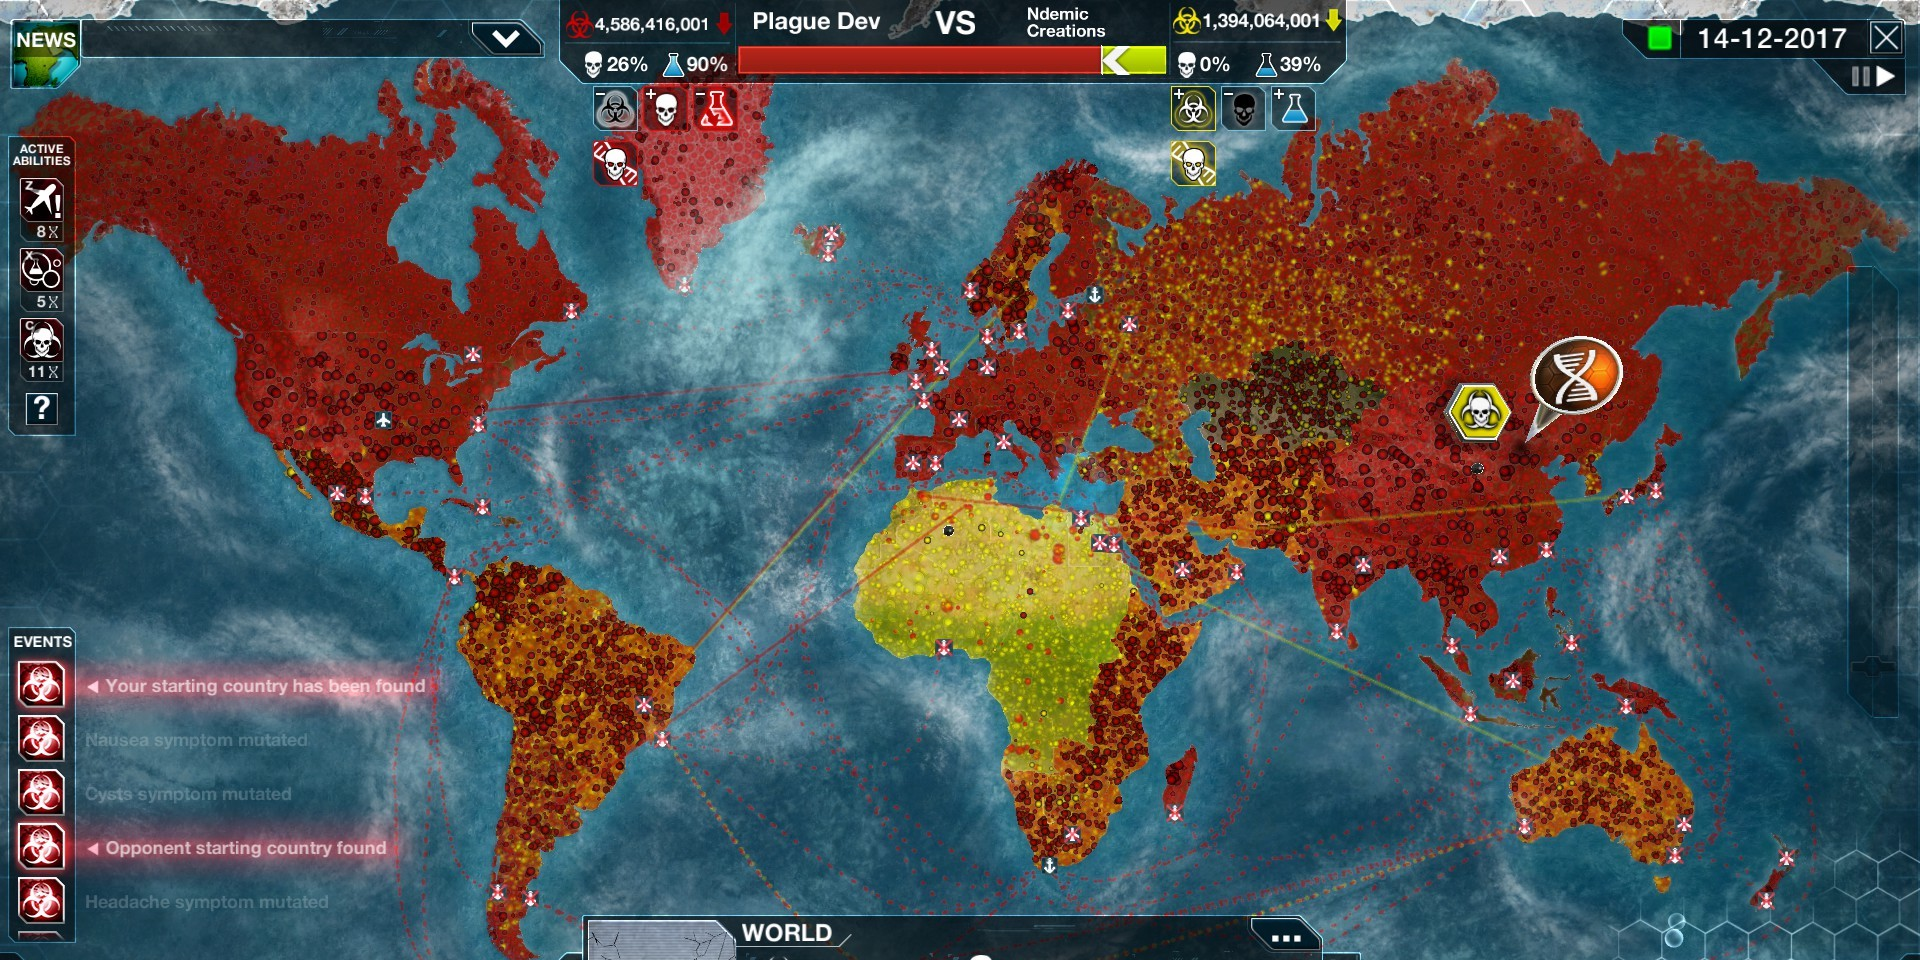 Ndemic Creations Plague Inc